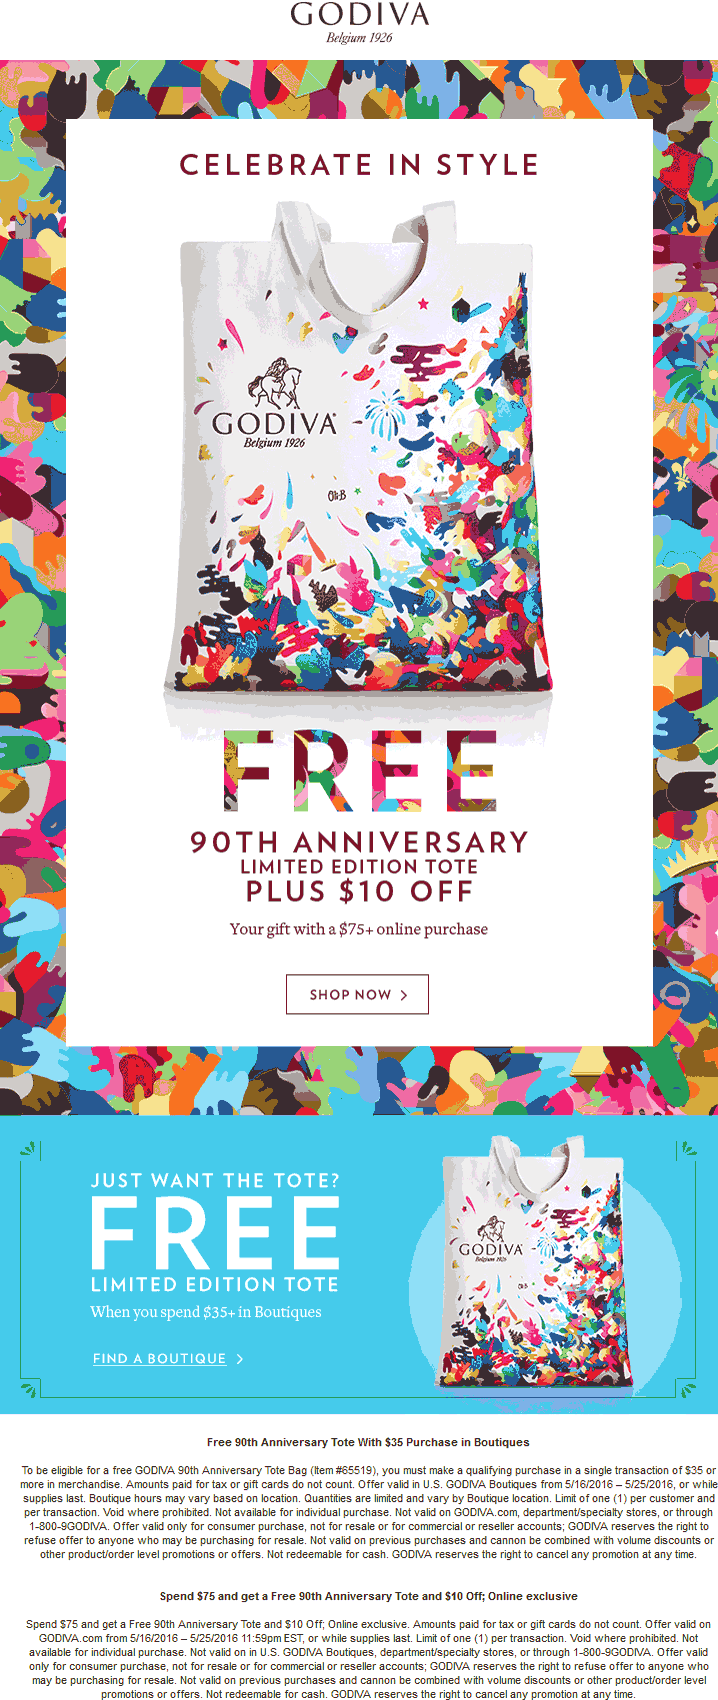 Godiva Coupon March 2018 $10 off $75 + free tote & shipping online at Godiva chocolates